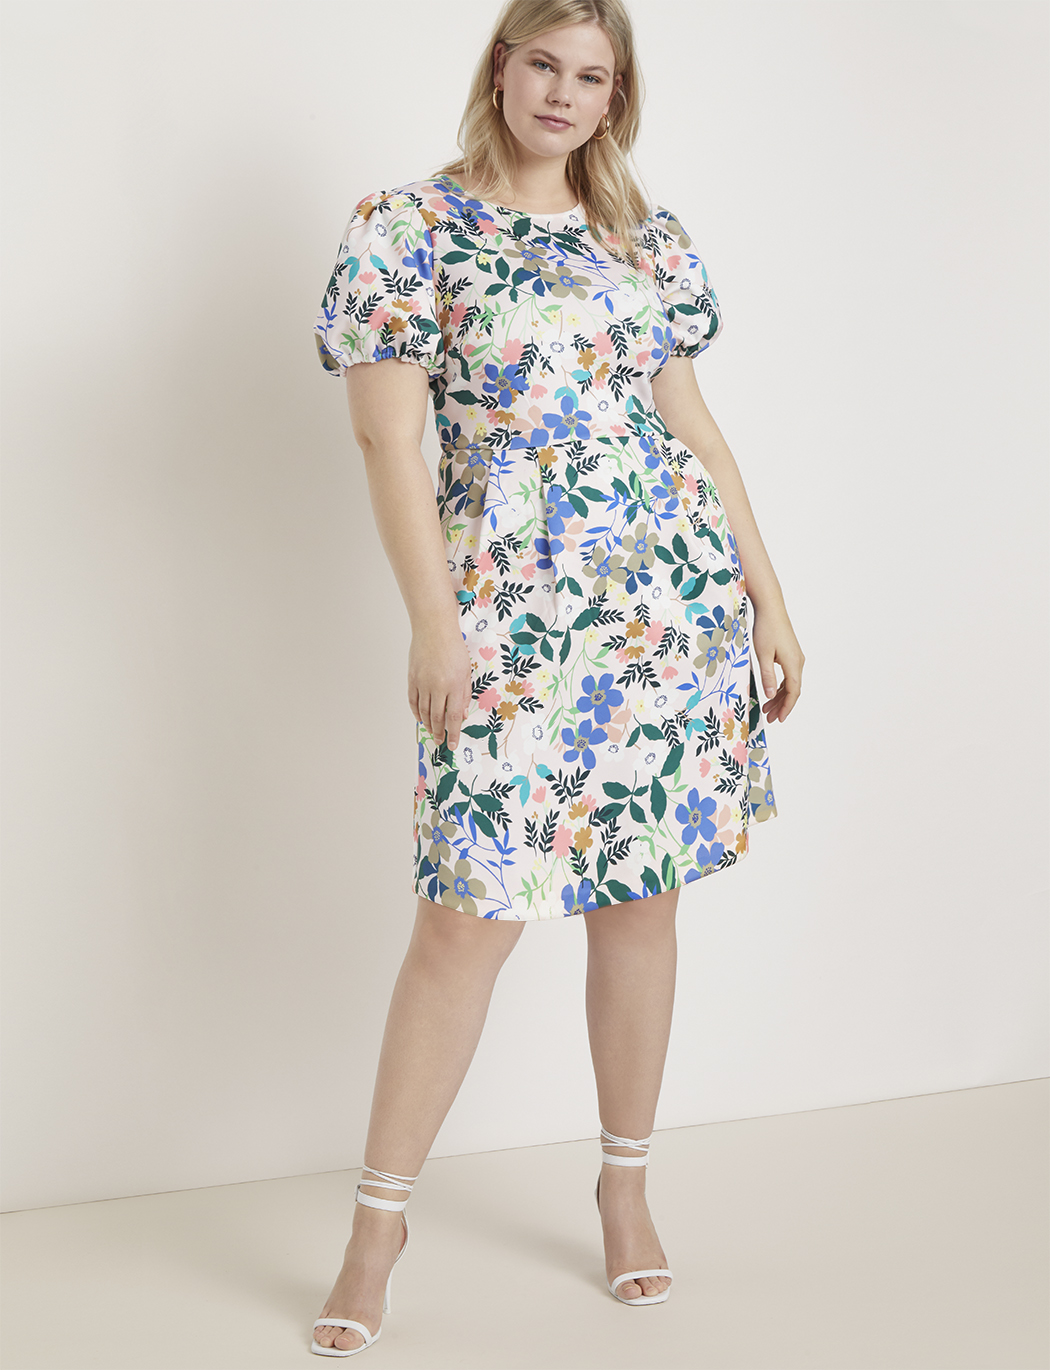 A-Line Puff Sleeve Dress